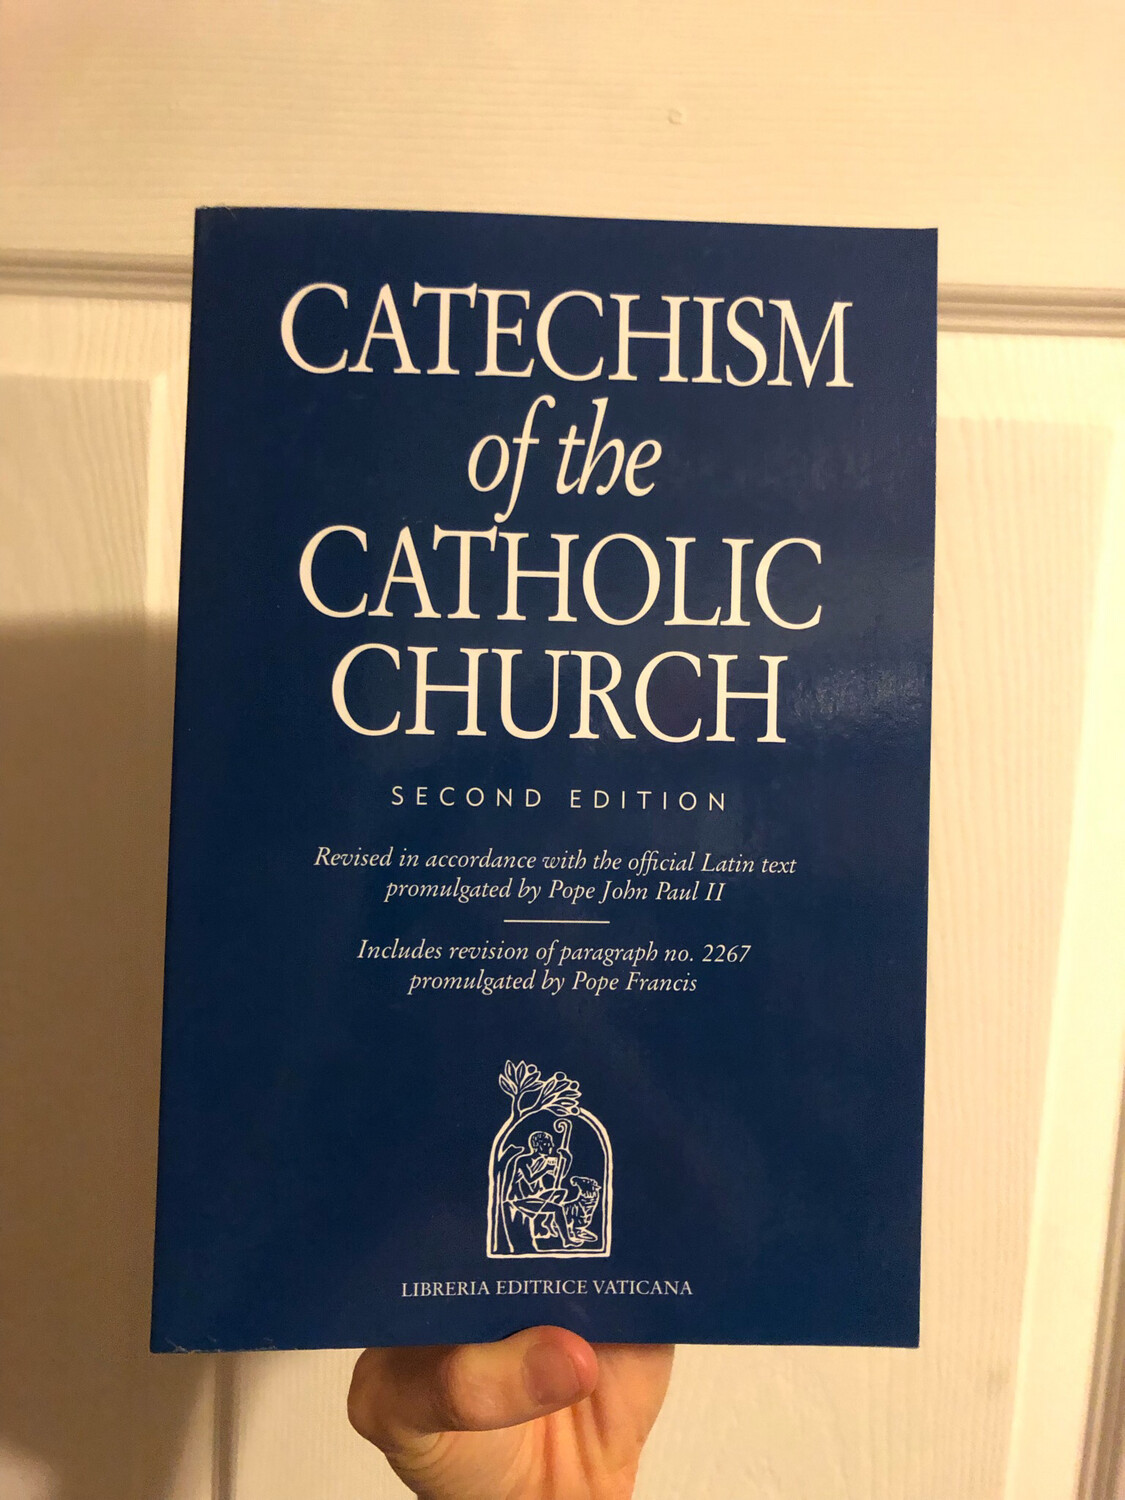 Catechism of the Catholic Church 2nd Edition Blue Paperback